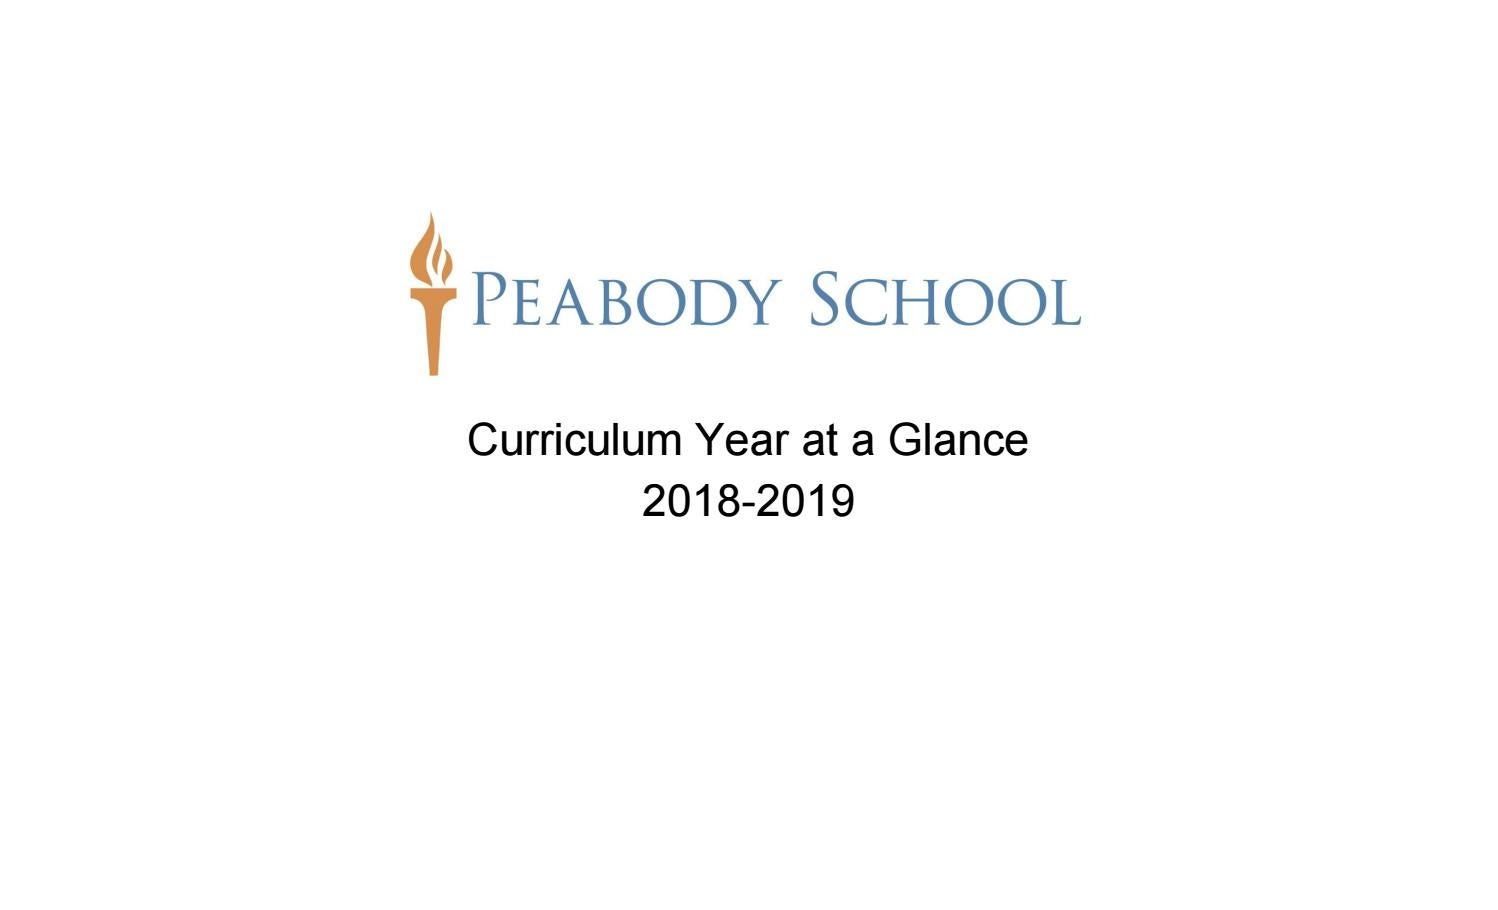 Peabody School 2018-2019 Curriculum Year at a Glance by